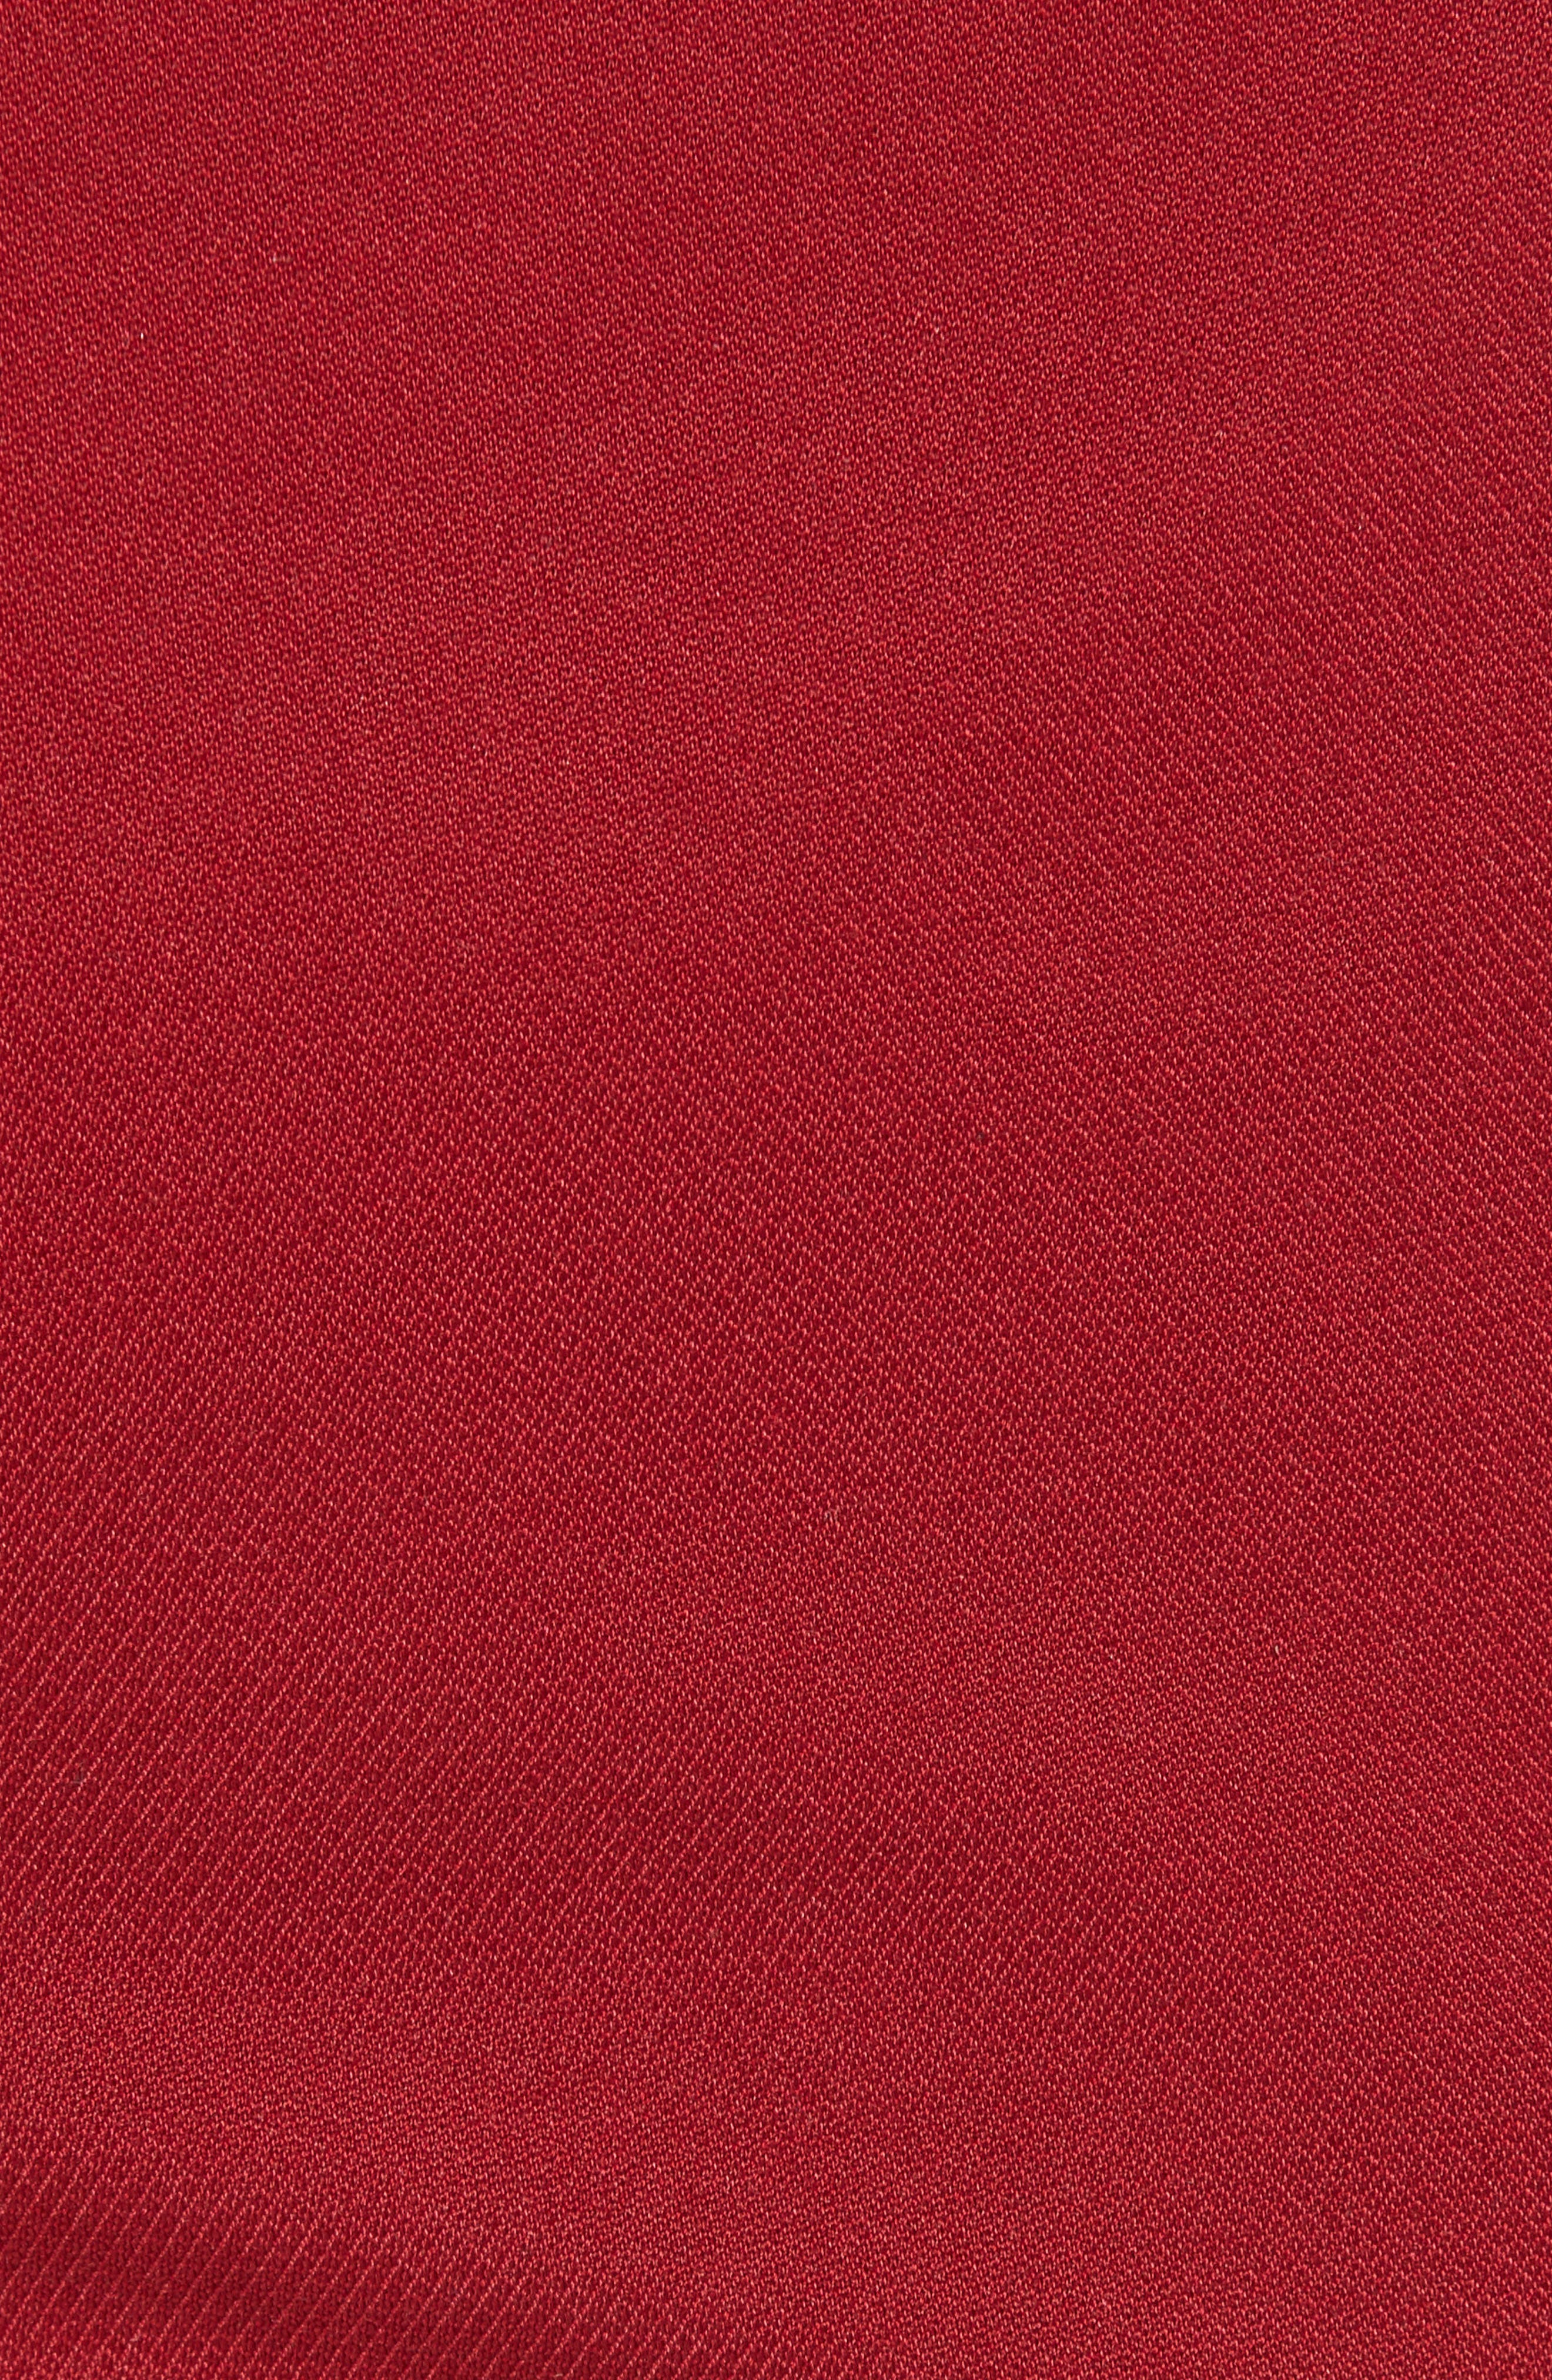 Skinny Fit Suit Trousers,                             Alternate thumbnail 5, color,                             Red